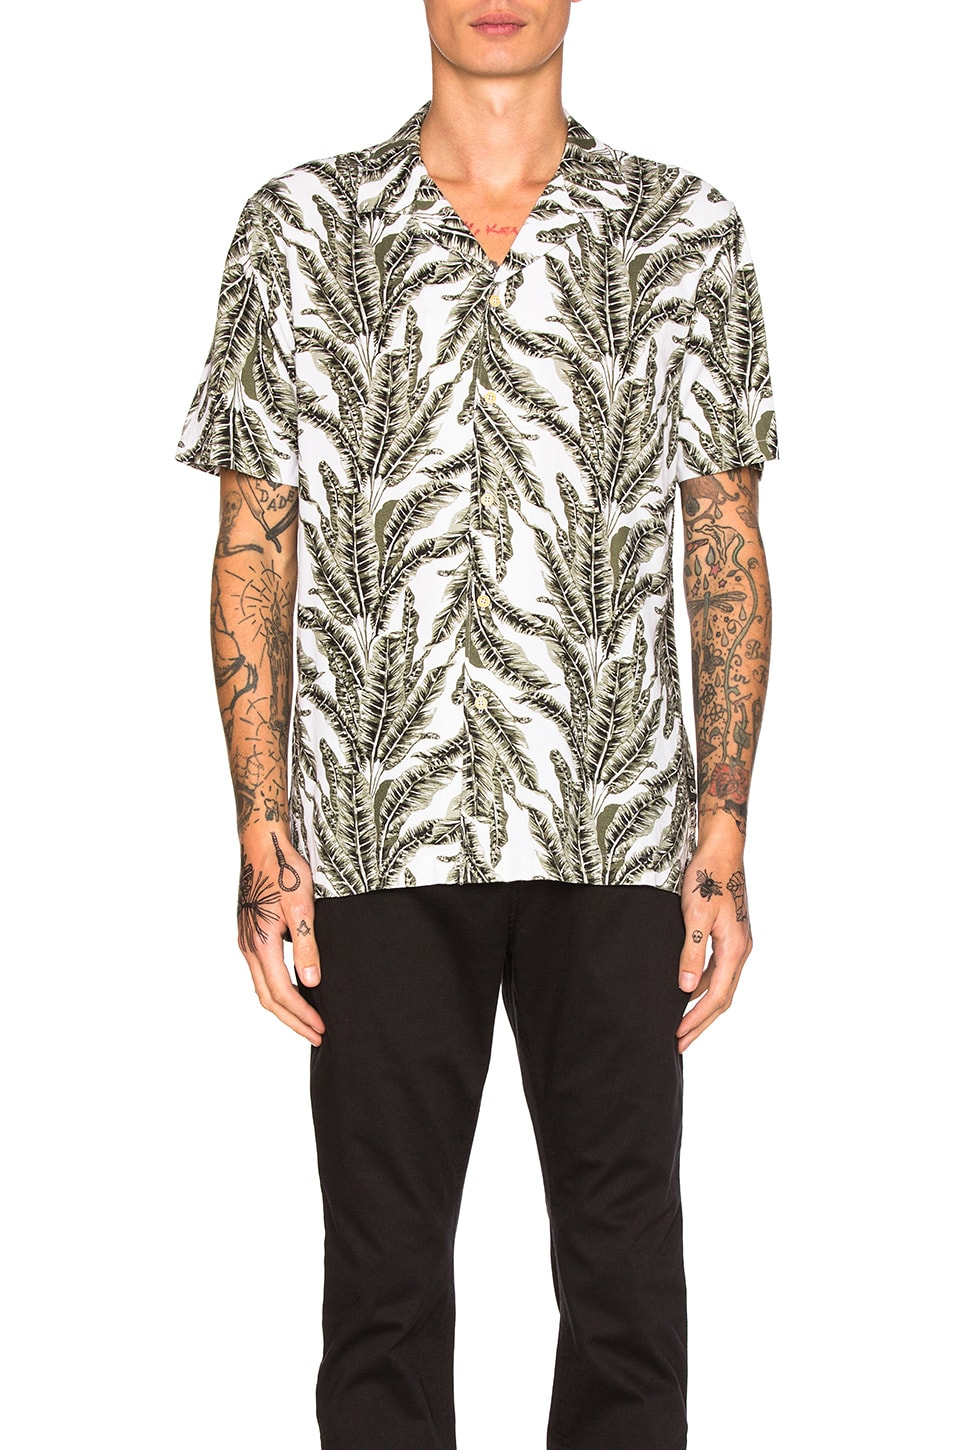 Camp Collar Shirt by Barney Cools